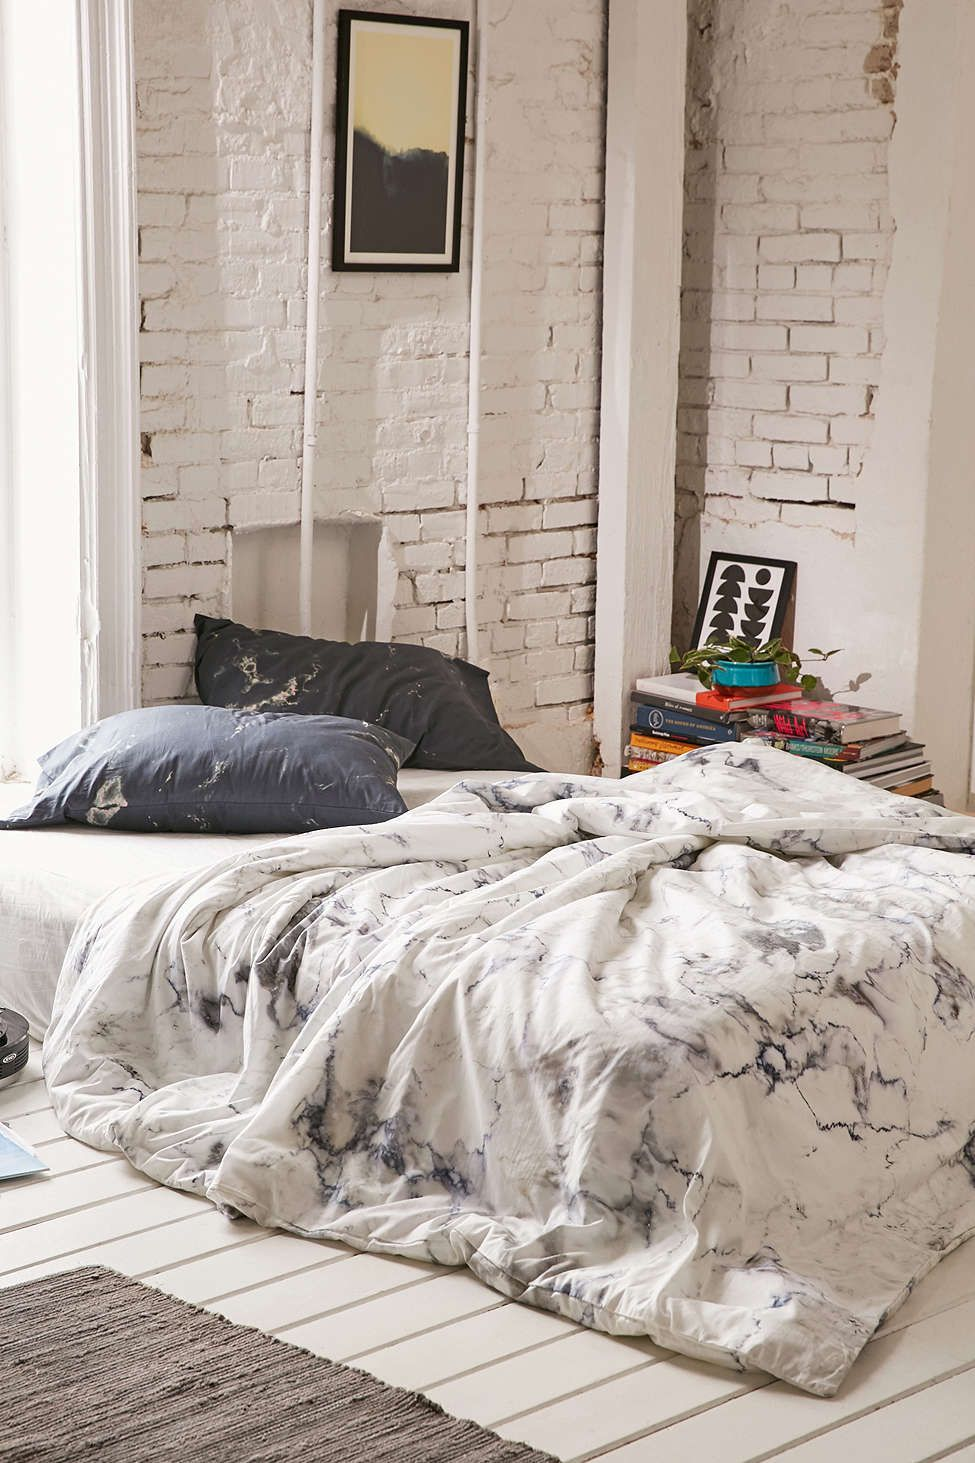 Assembly Home Marble Duvet Cover Awesome Stuff Spaces And Stuffing